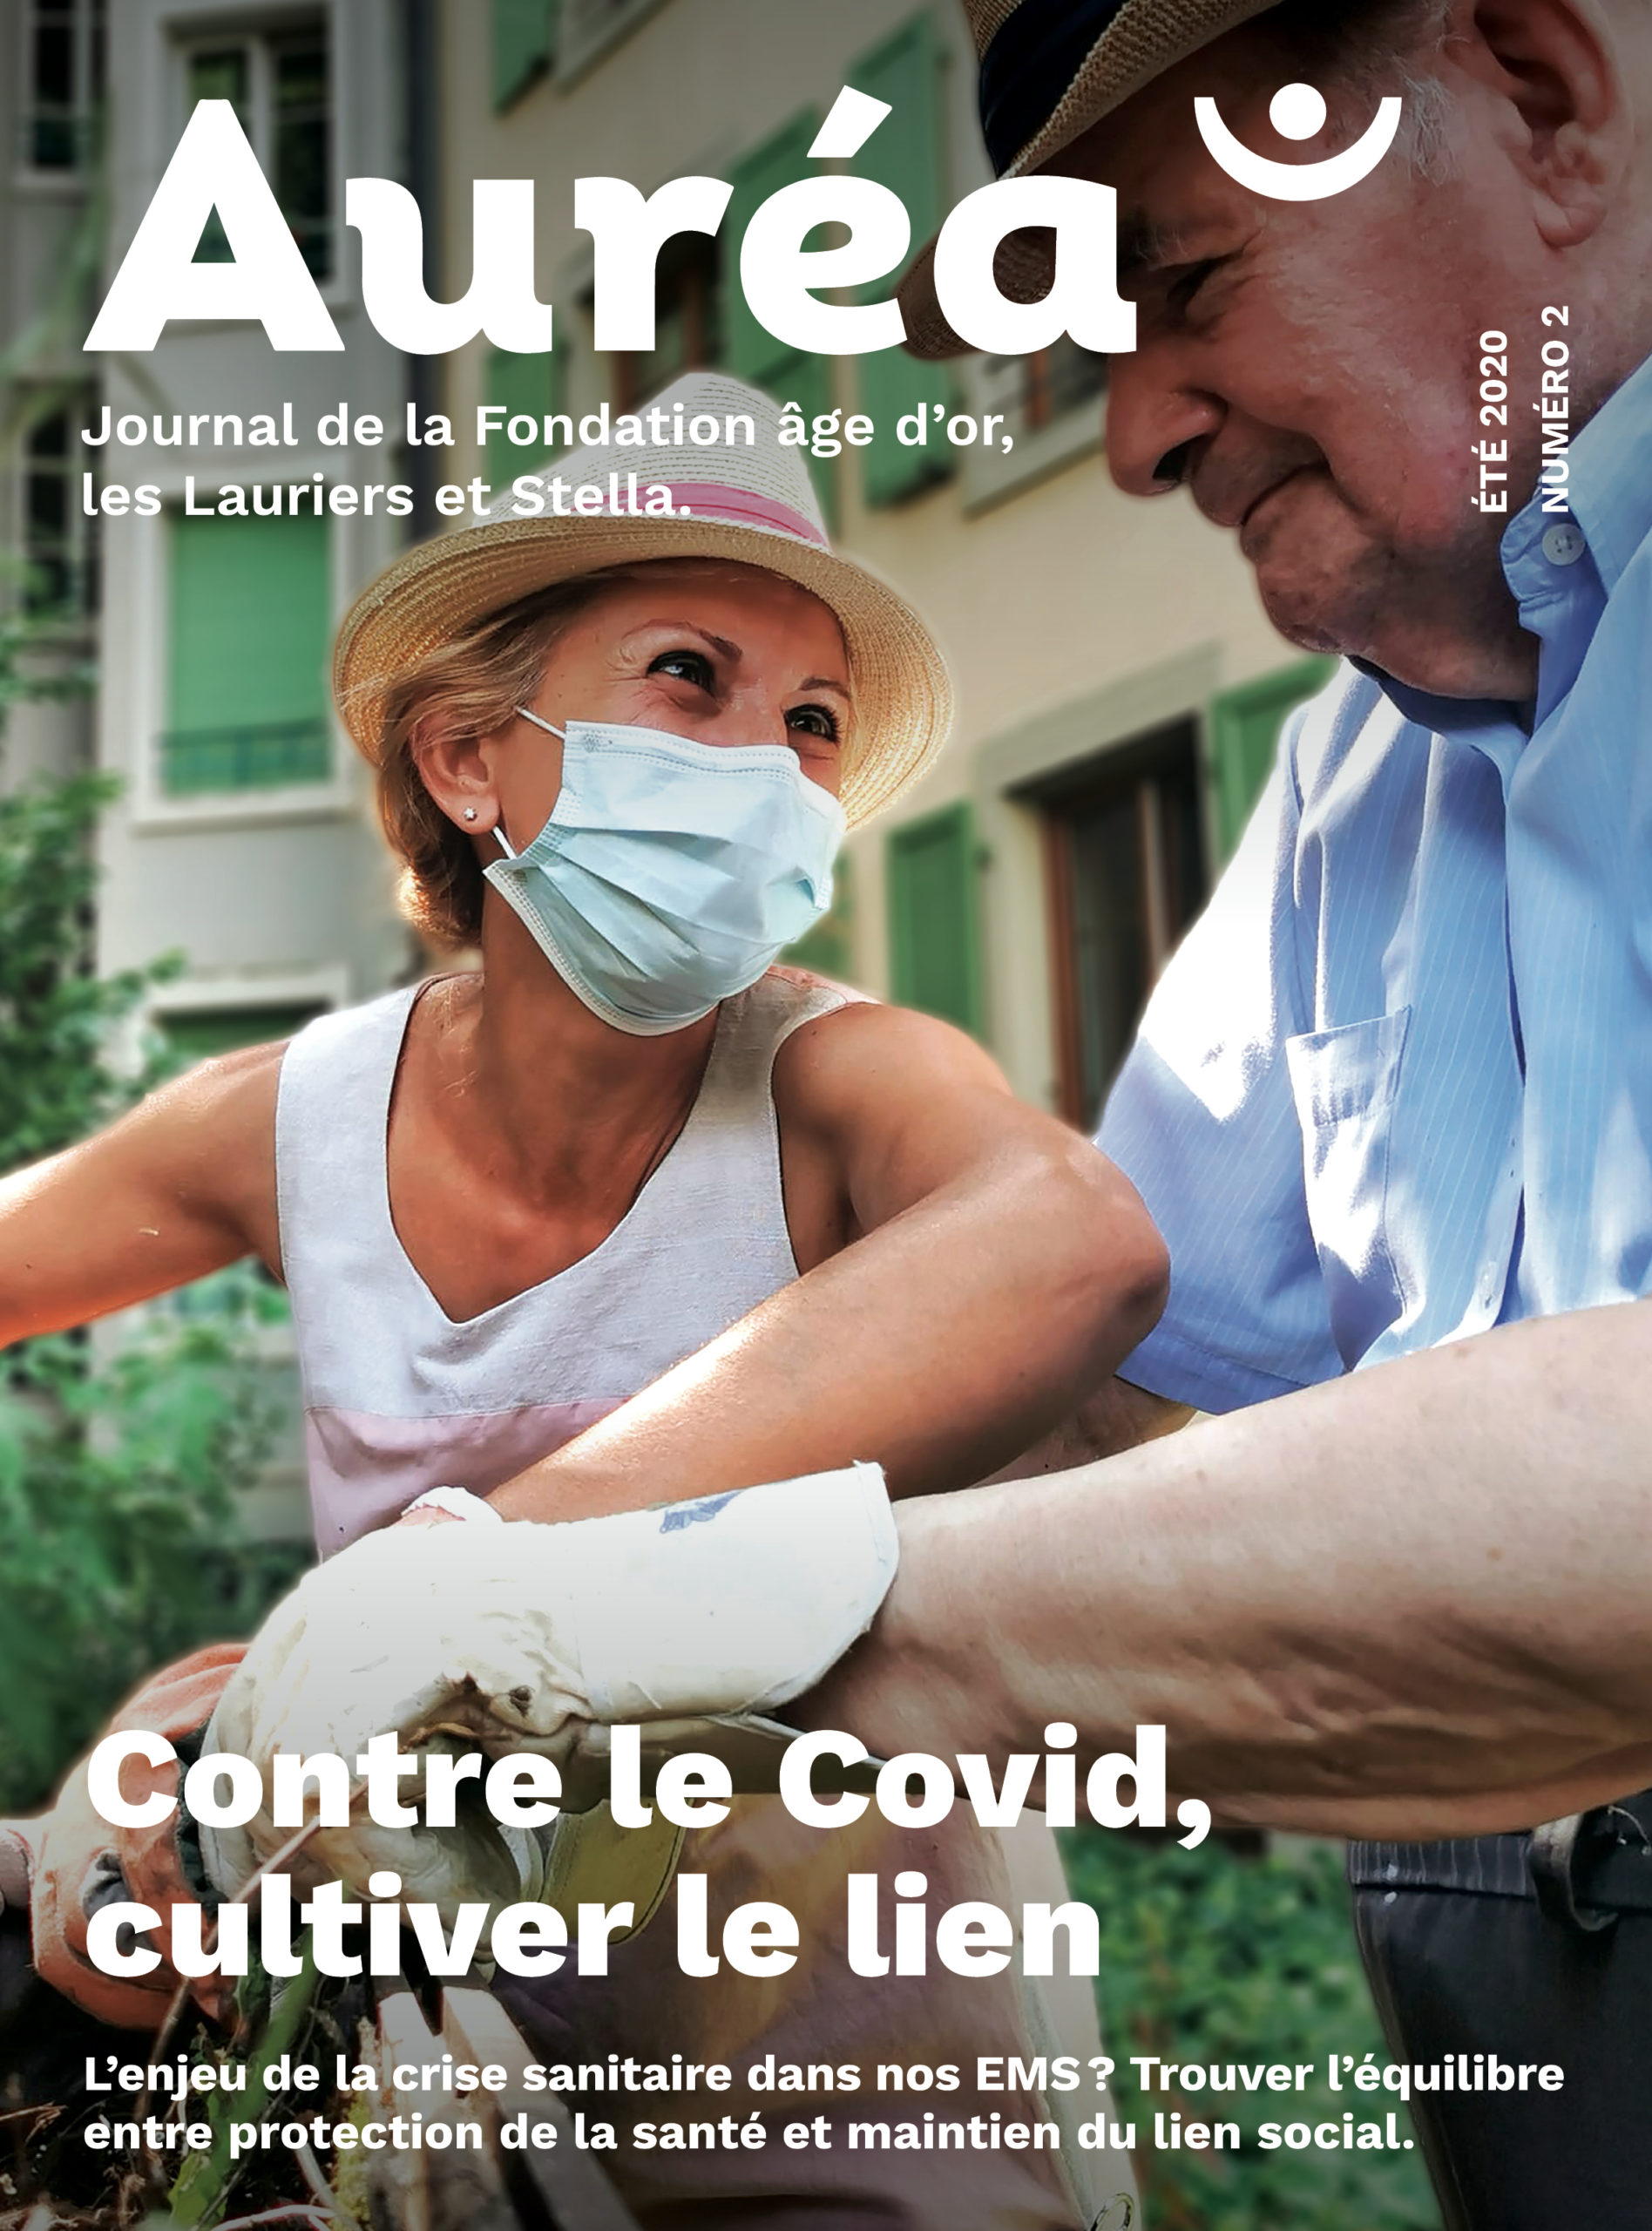 Auréa, le journal de la Fondation